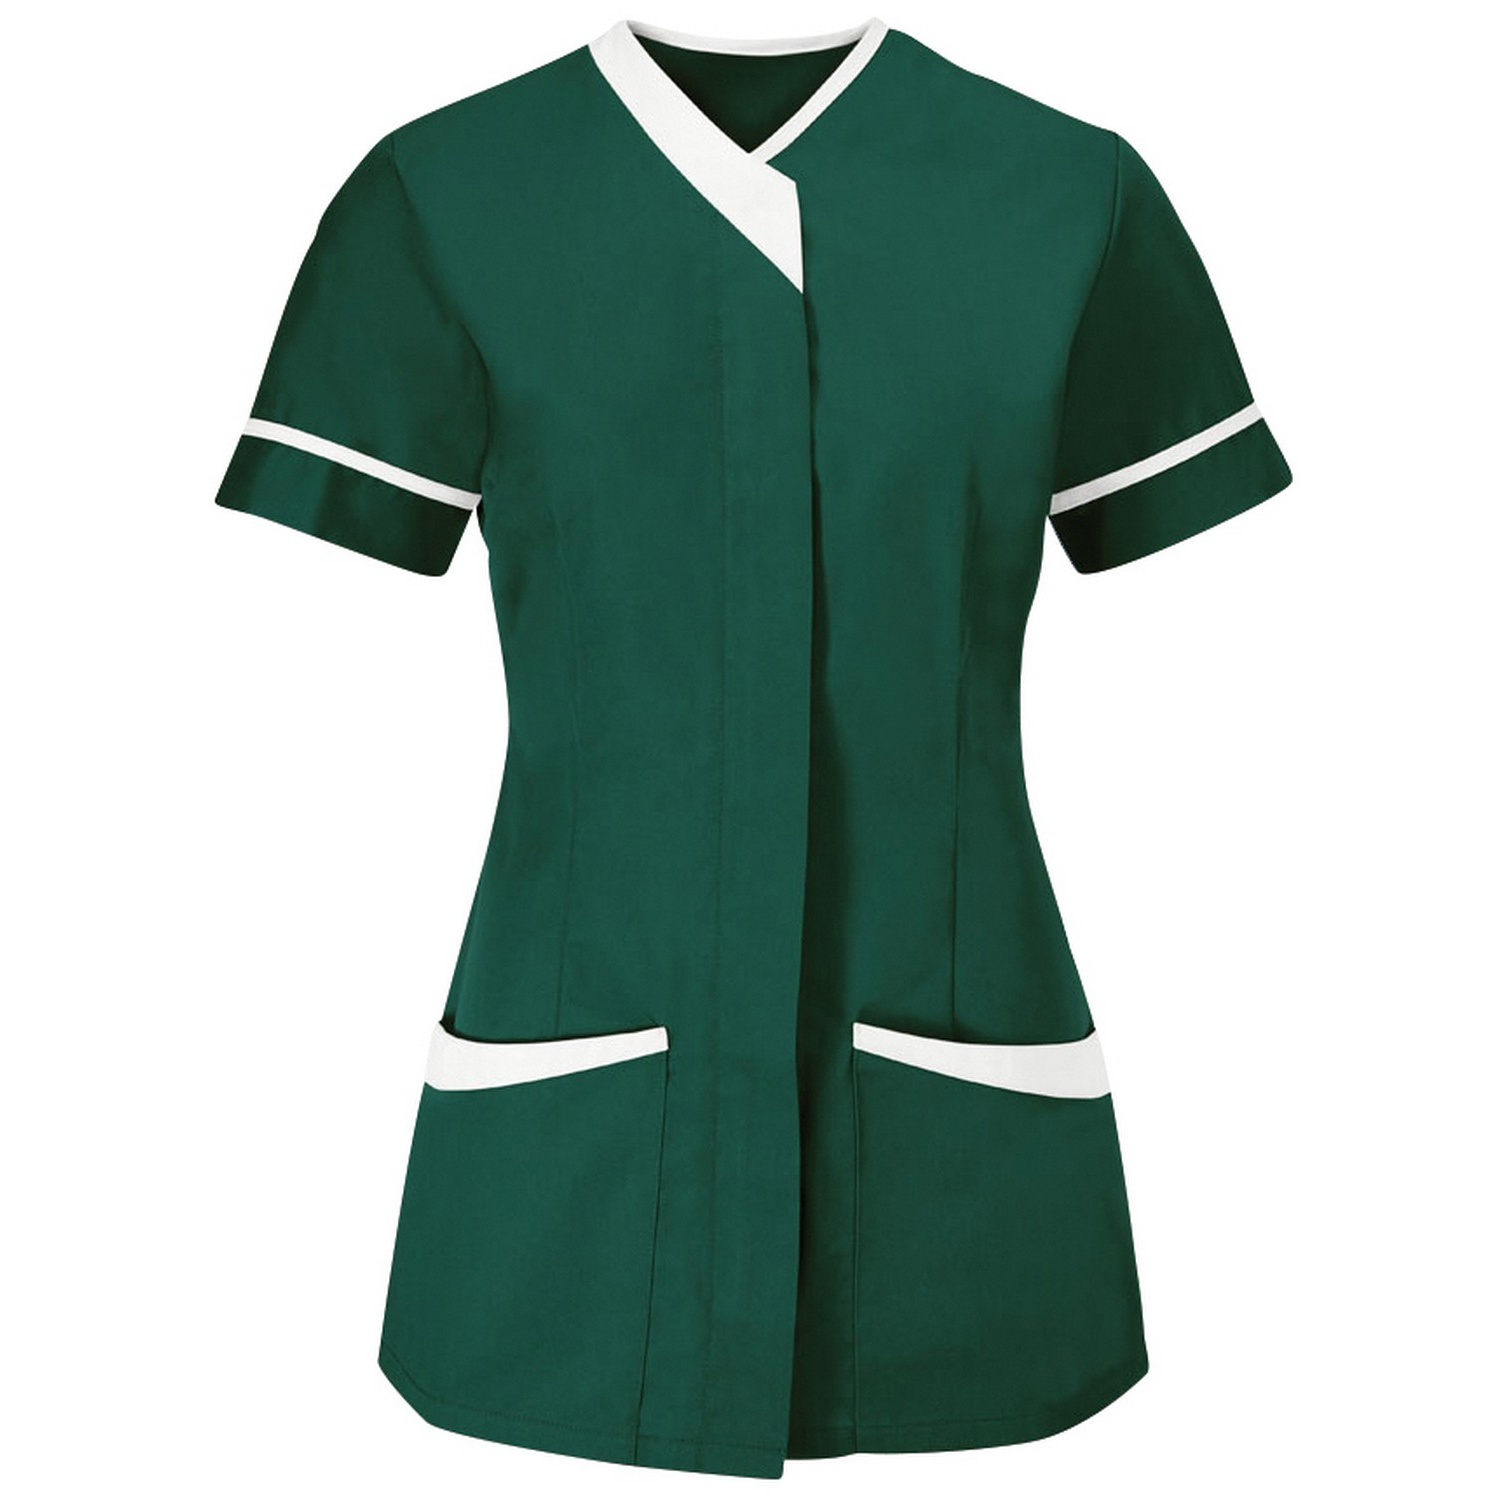 Alexandra Womens/Ladies Contrast Trim Medical/Healthcare Work Tunic (Pack of 2) (22) (Bottle Green/White)